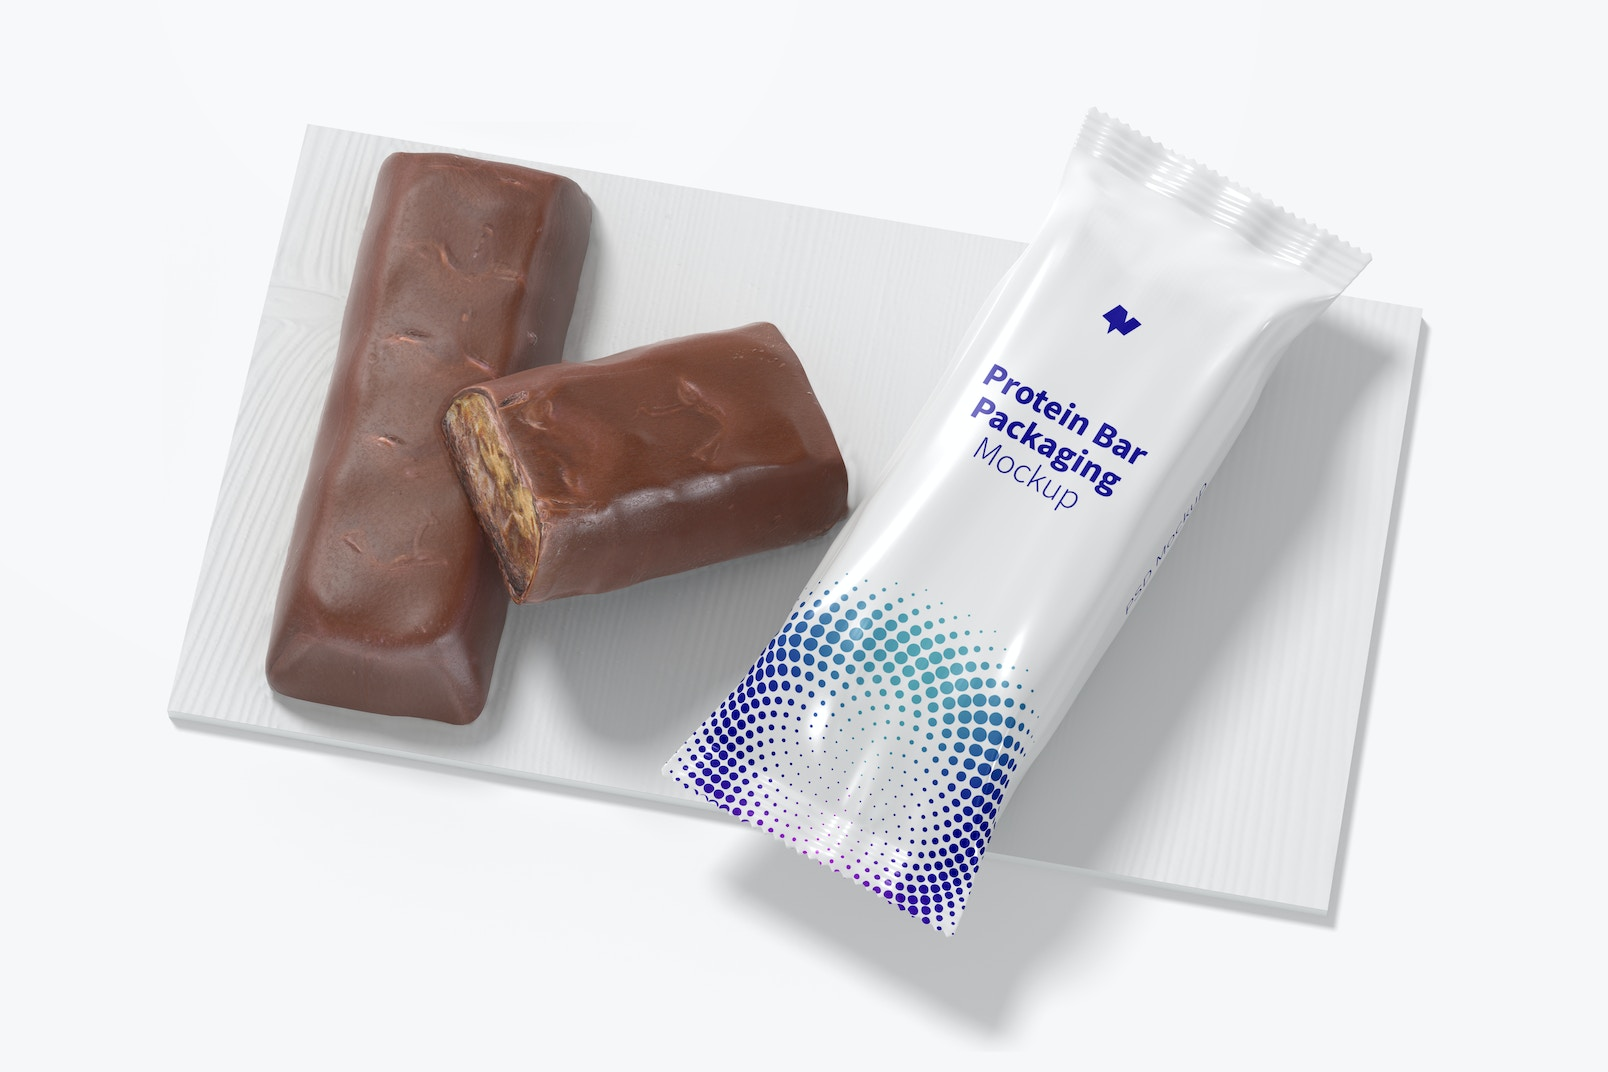 Protein Bar Packaging Mockup, Top View